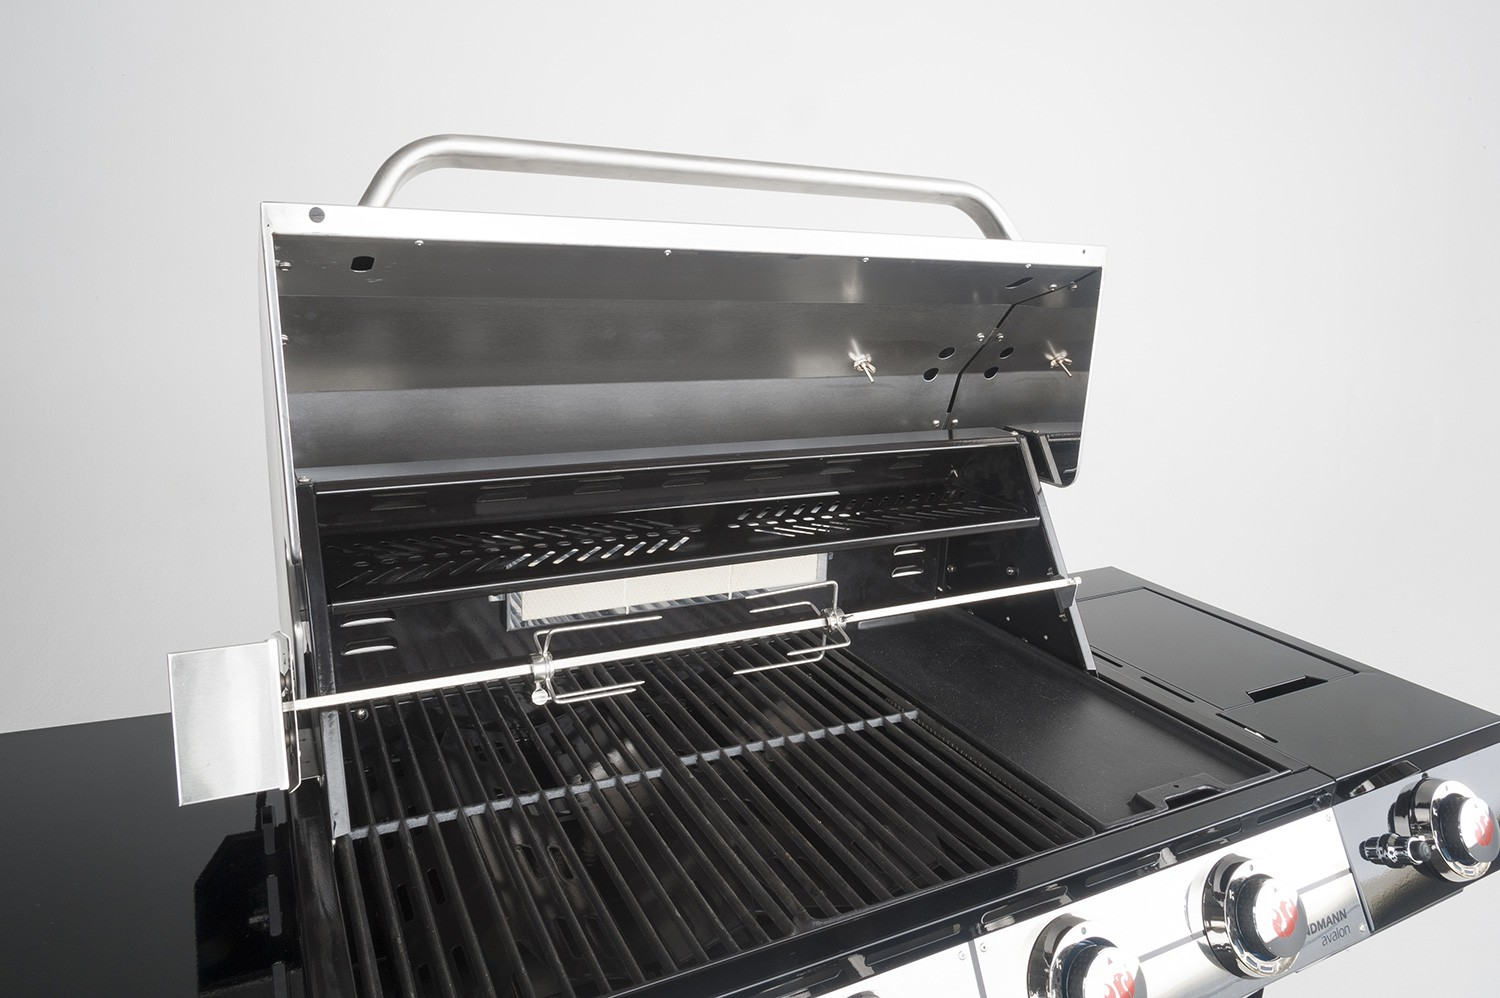 Justus Gasgrill Küche Gasgrill Fur Kuche Excellent Taino Gasgrill Bbq Grillwagen With